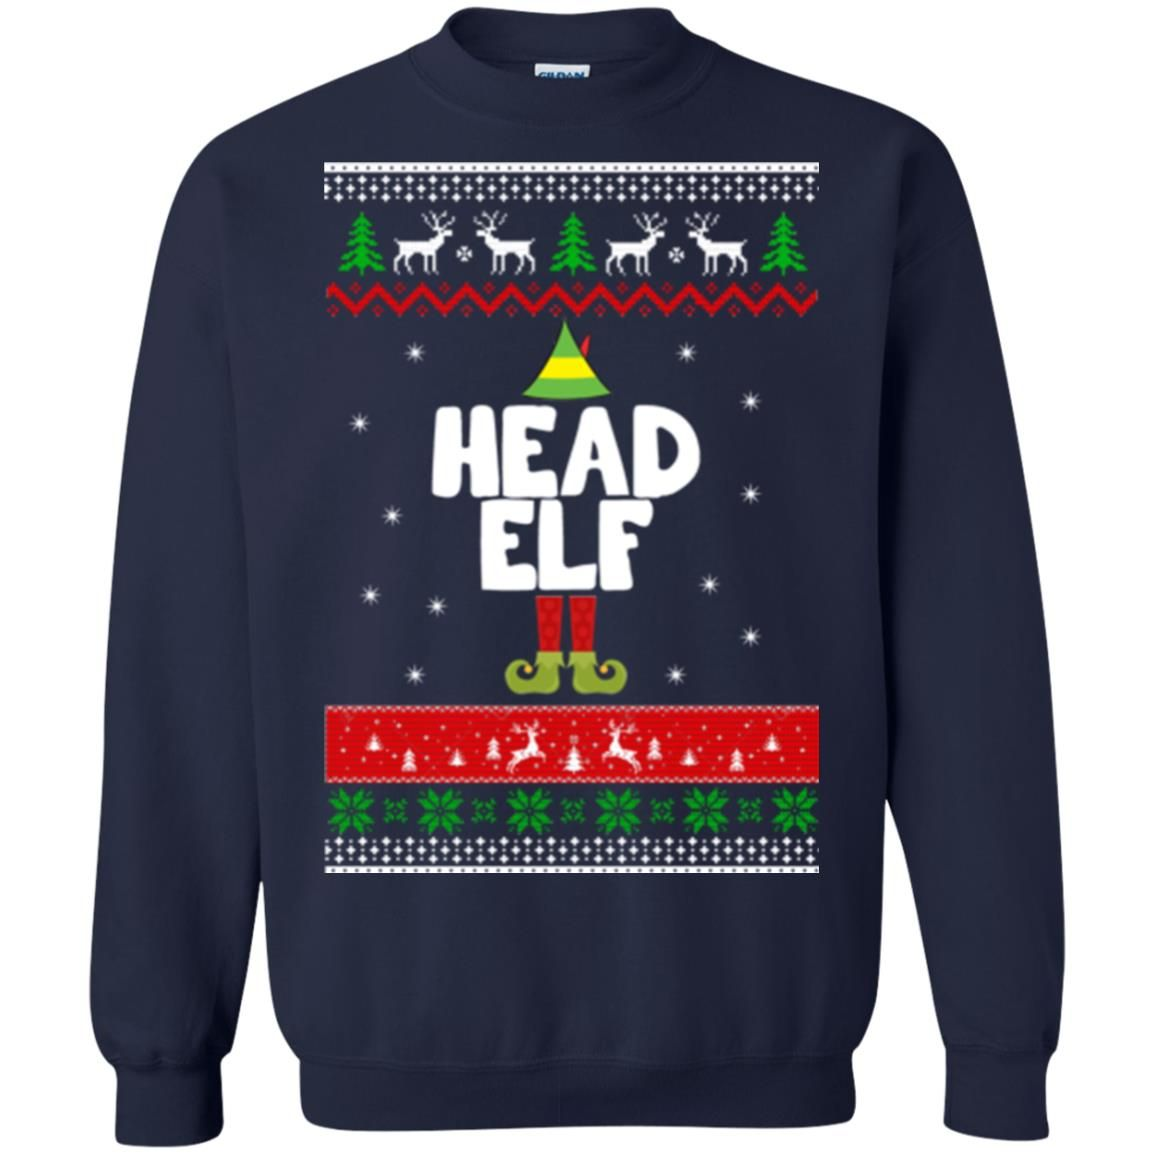 image 1772 - Christmas Vacation: Buddy The Elf sweater, hoodie